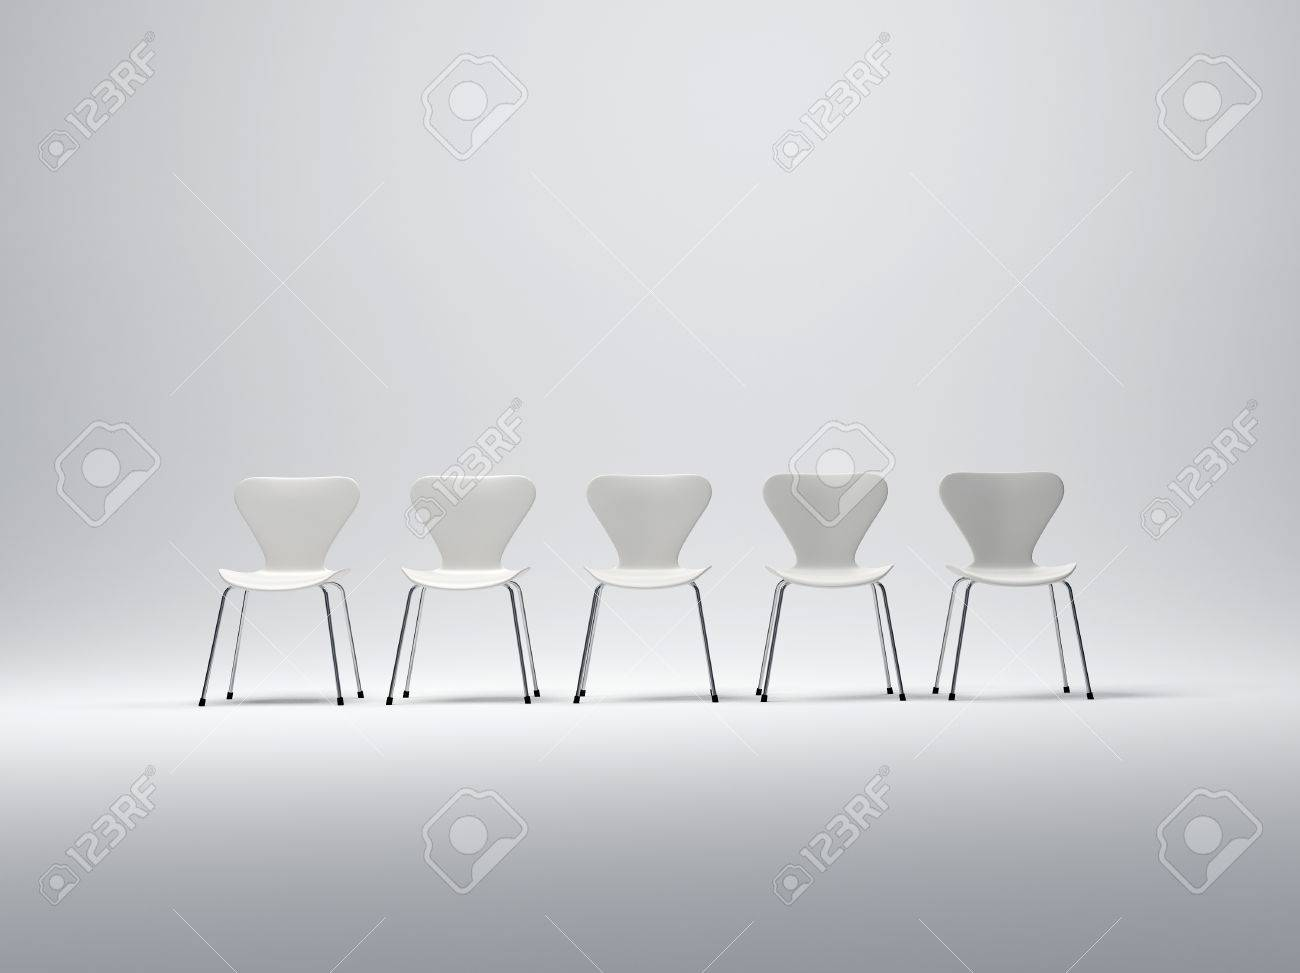 plastic metal chairs. Row Of Five White Plastic And Metal Chairs In A Neutral Background Stock Photo - 1584897